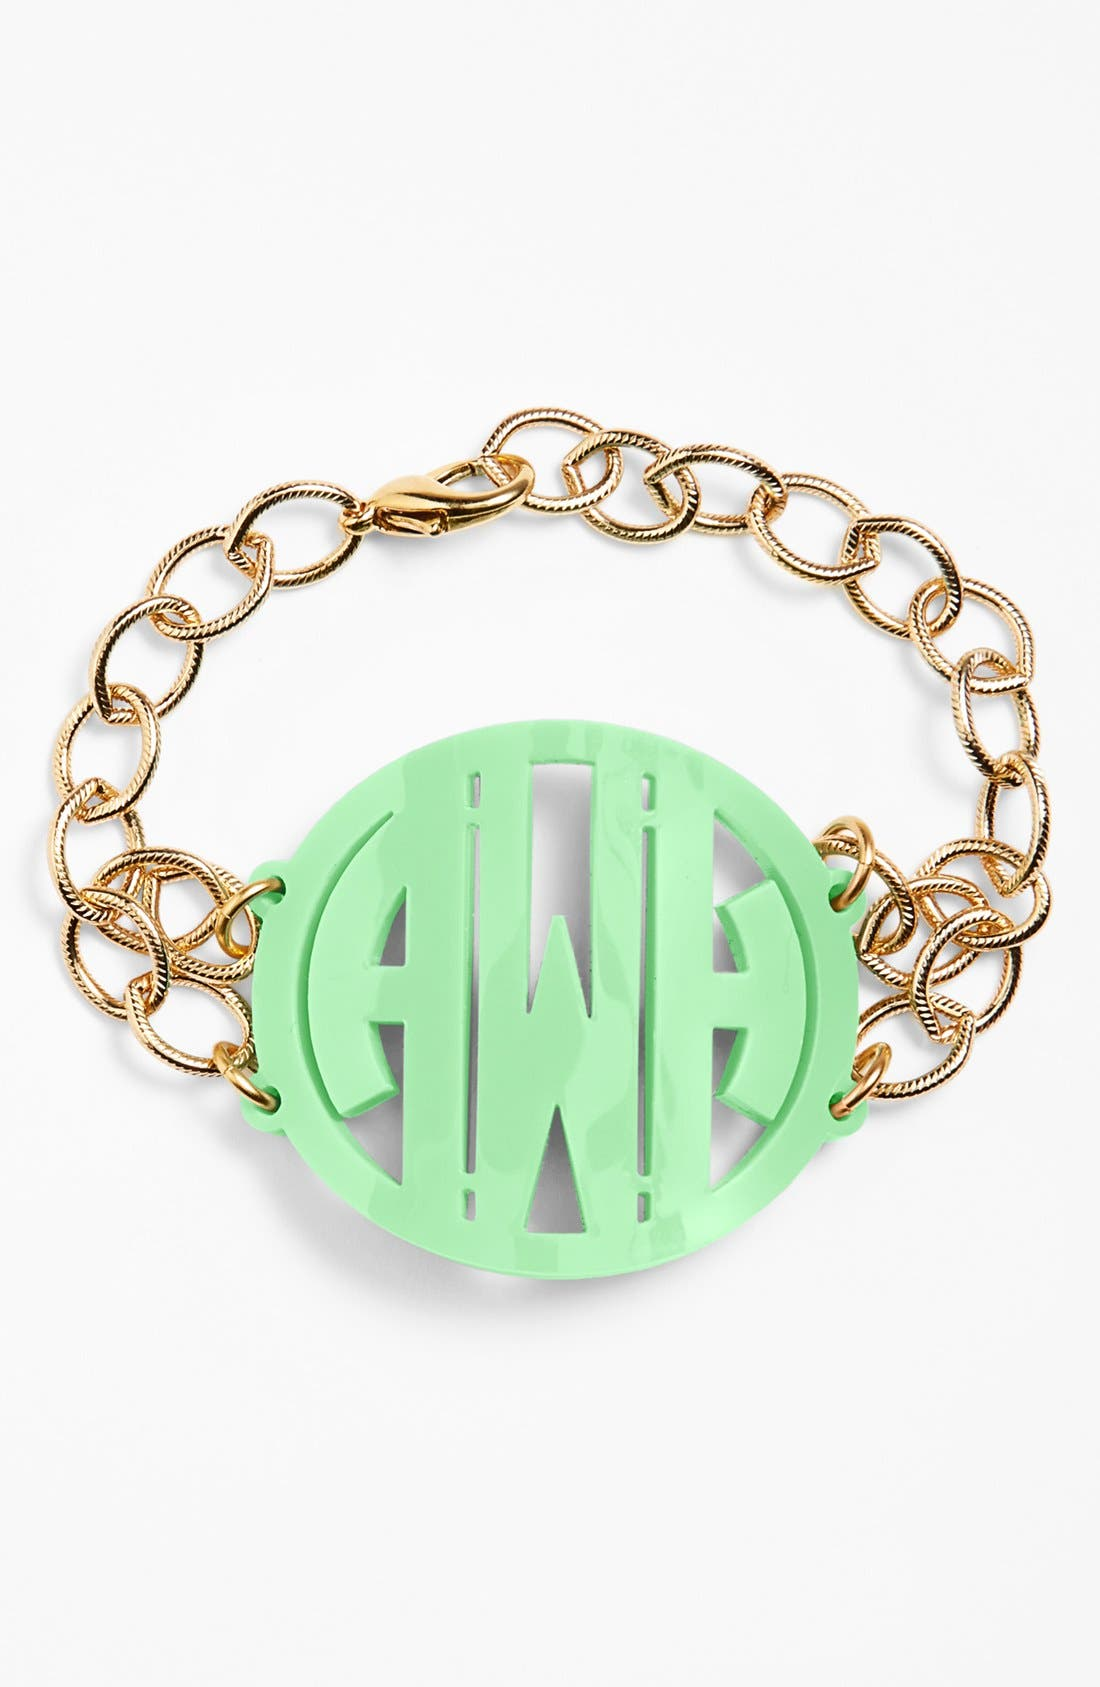 'Annabel' Large Personalized Monogram Bracelet,                             Main thumbnail 1, color,                             Mint/ Gold